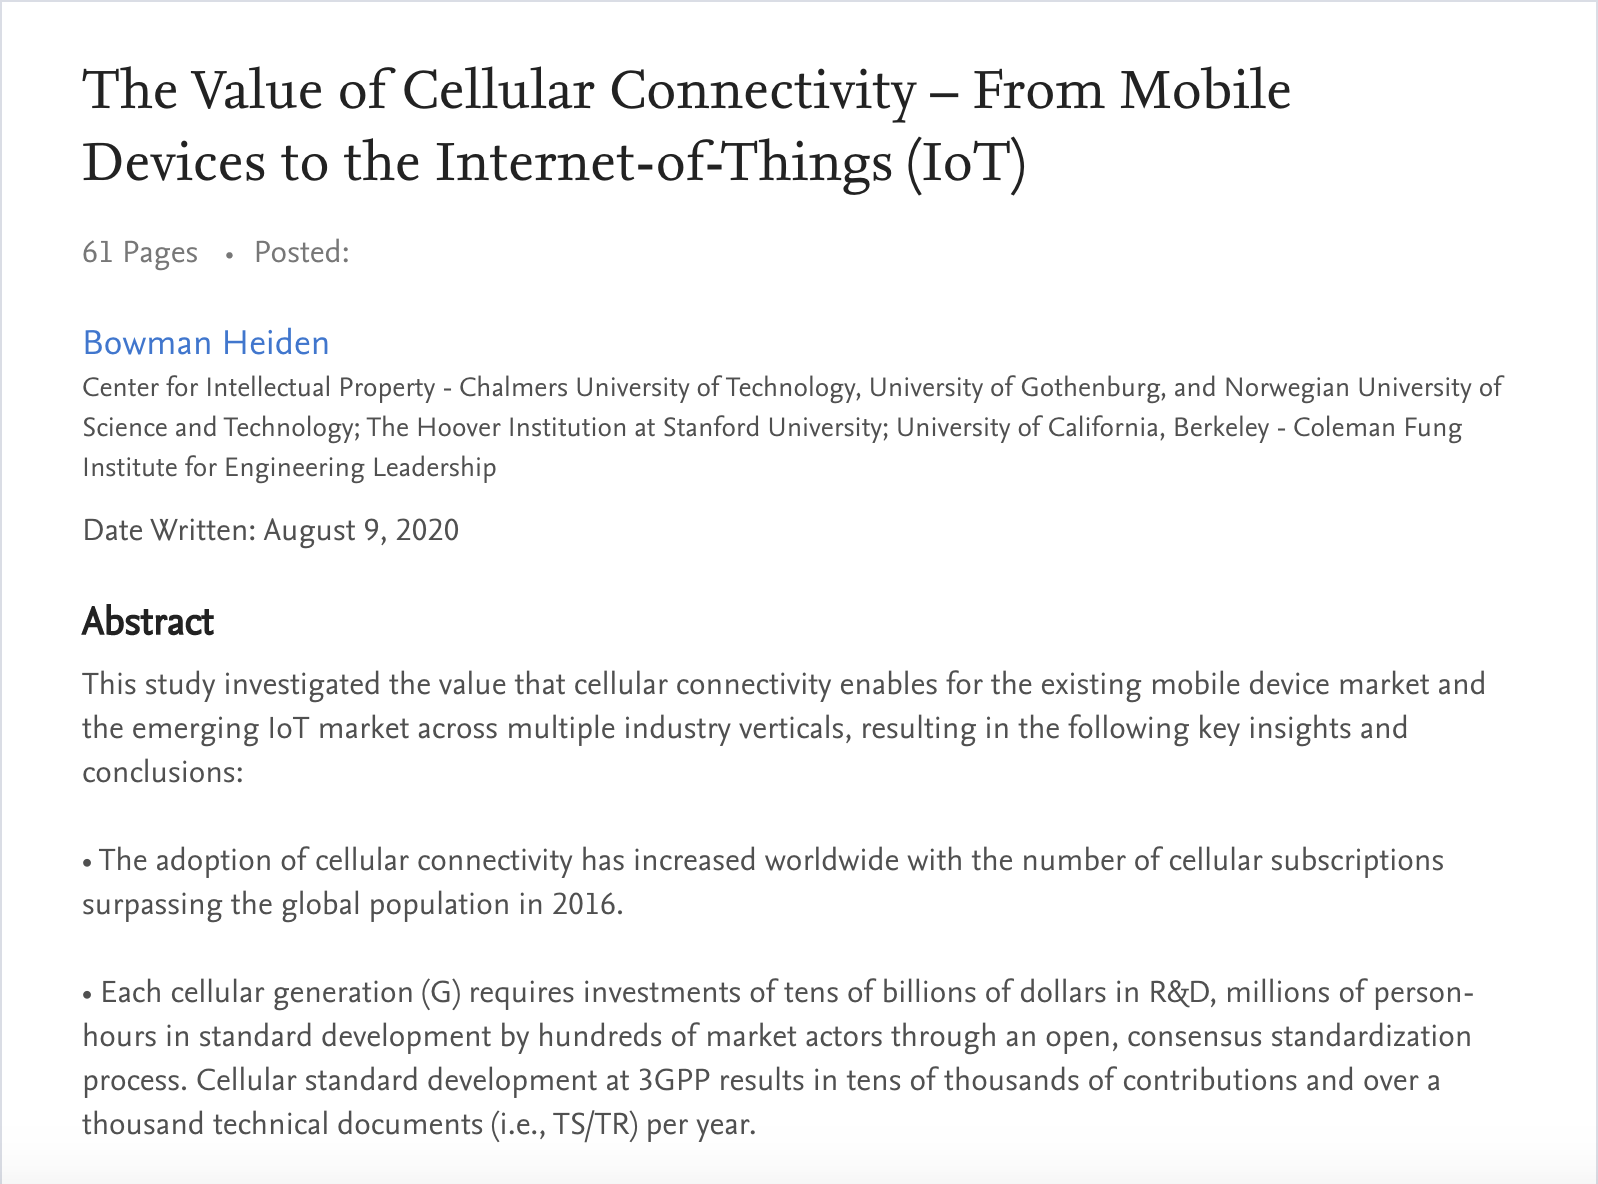 Bowman Heiden's Latest Paper On The Value Of Cellular Connectivity